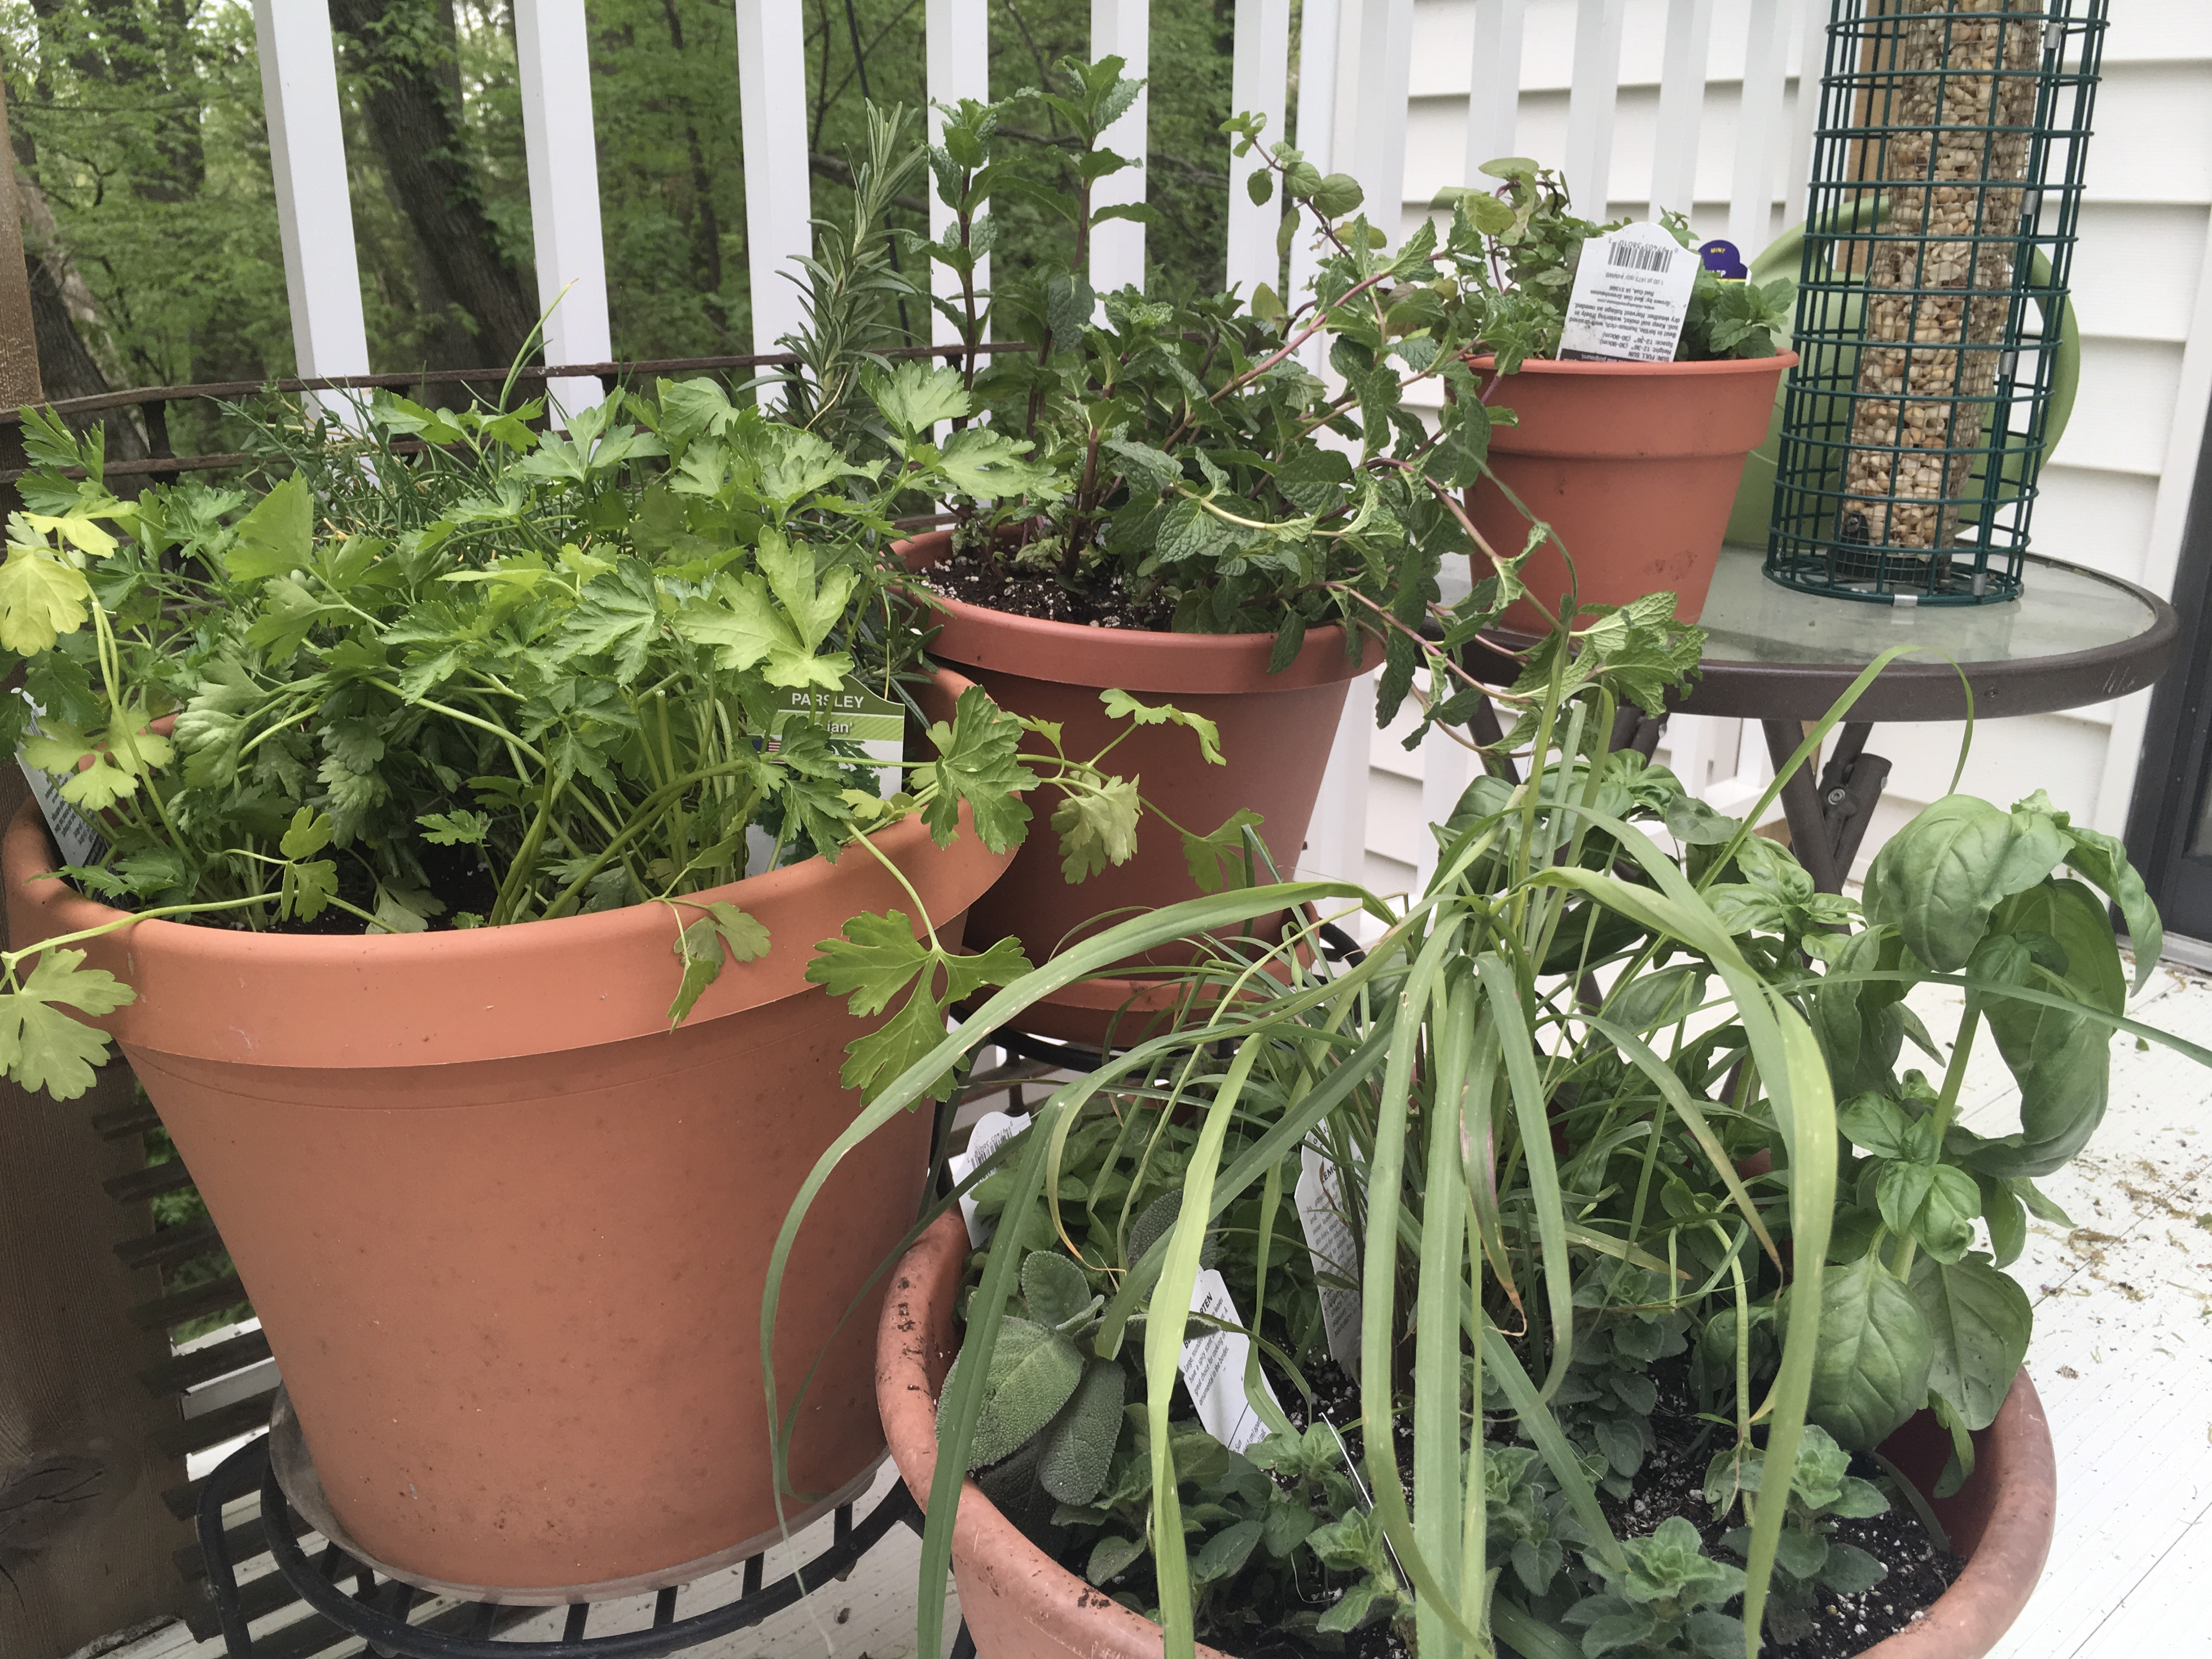 Herb Pots, Tomato Plants and What's Been Happening in My Kitchen